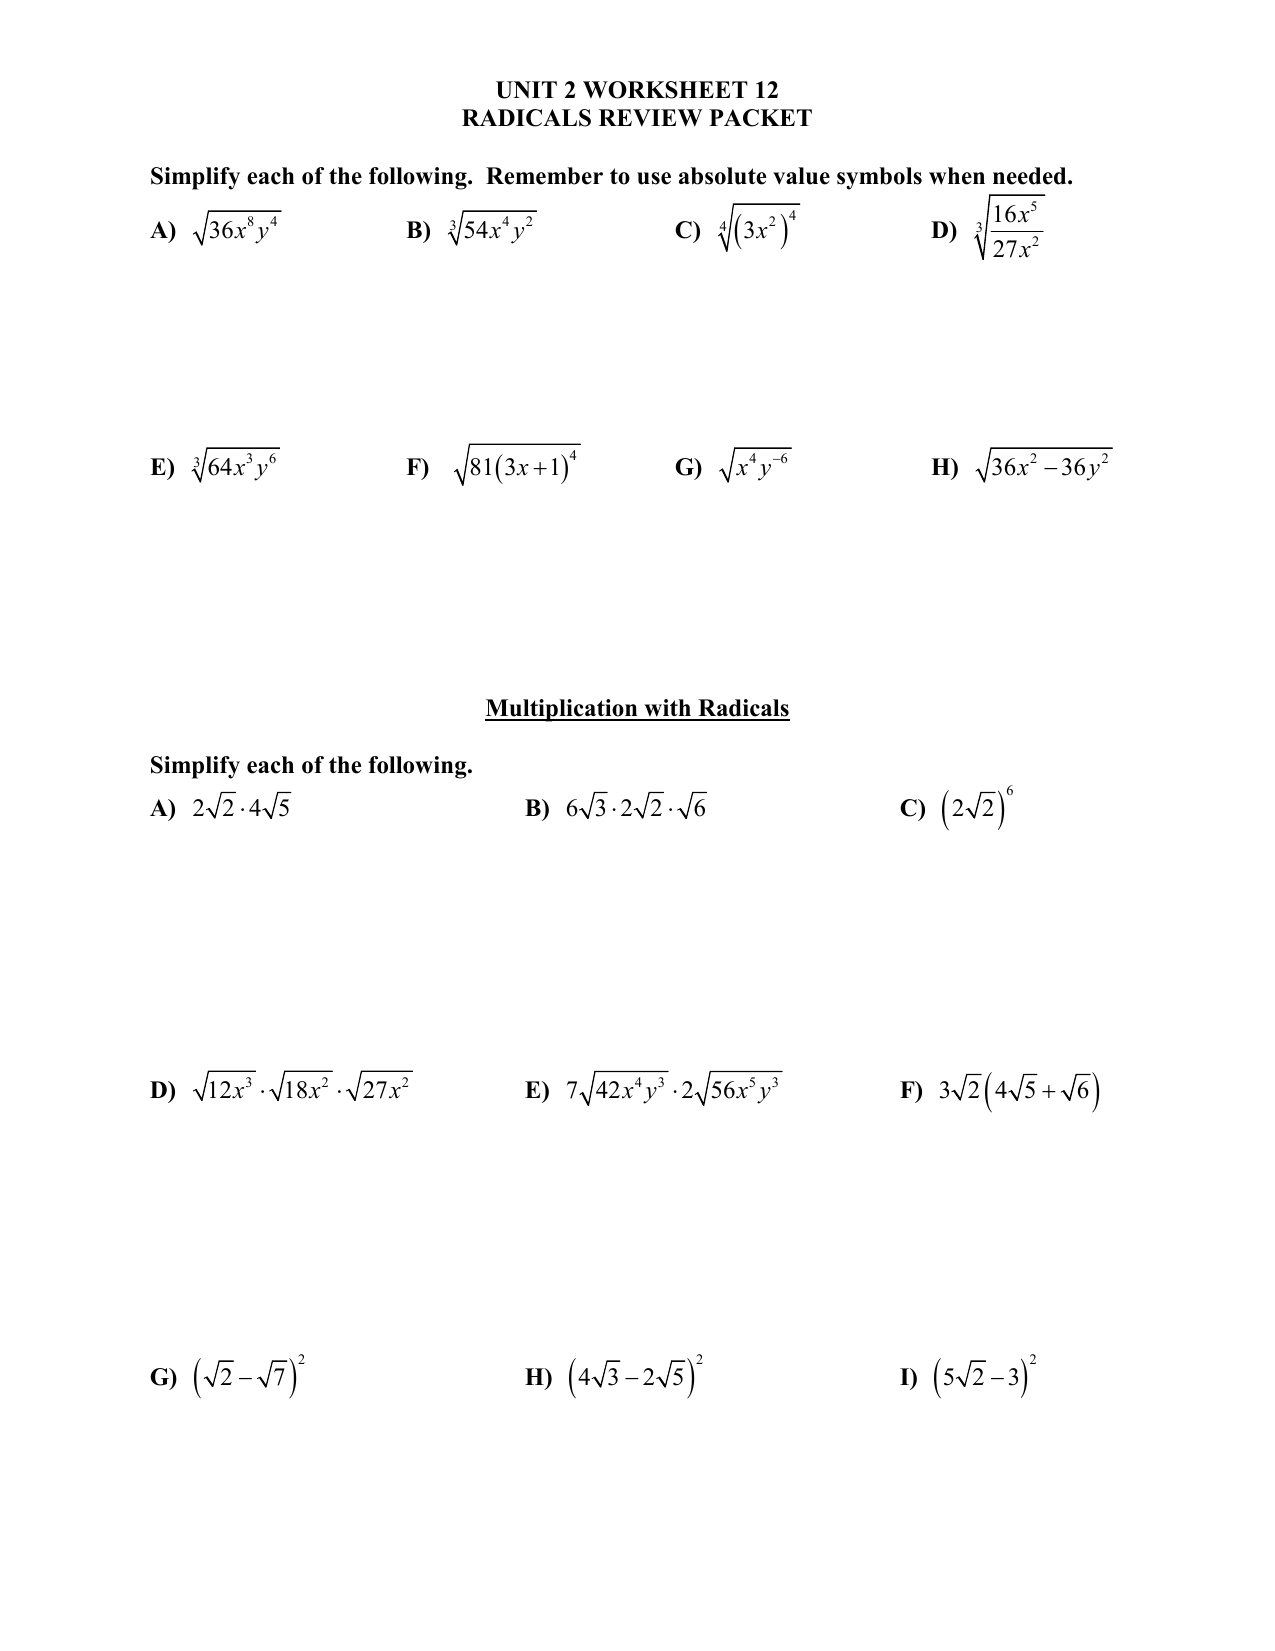 Unit 2 Worksheet 12 Radicals Review Packet